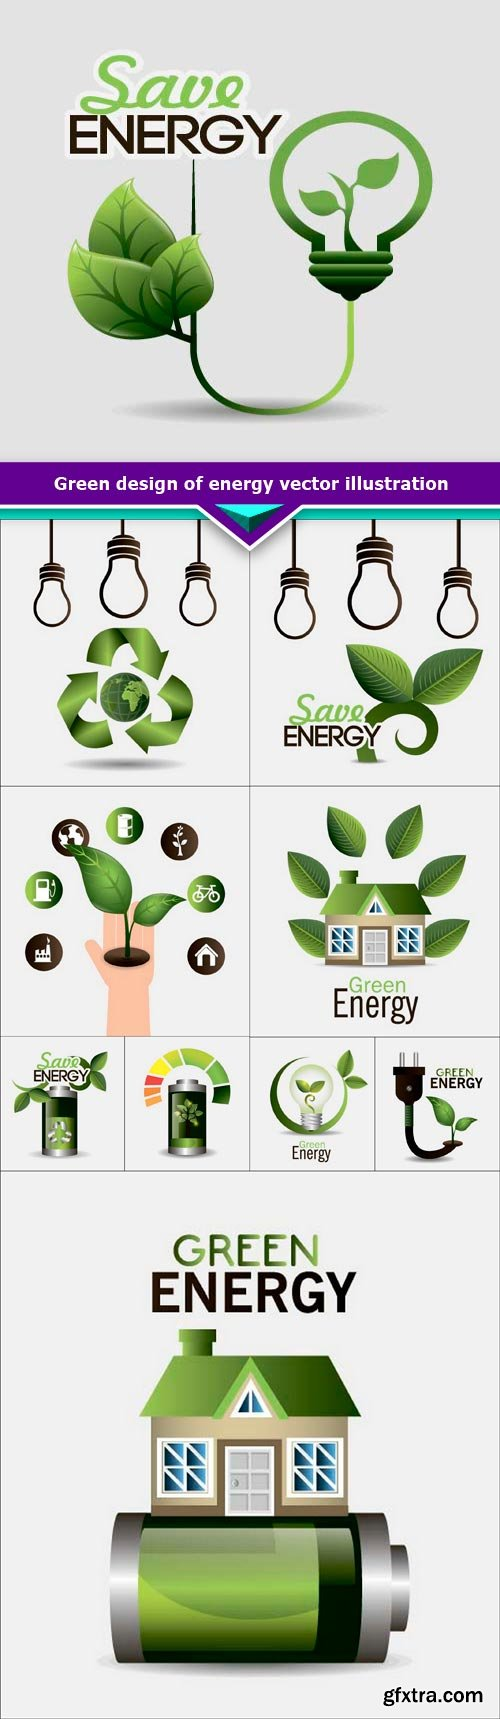 Green design of energy vector illustration 10x EPS